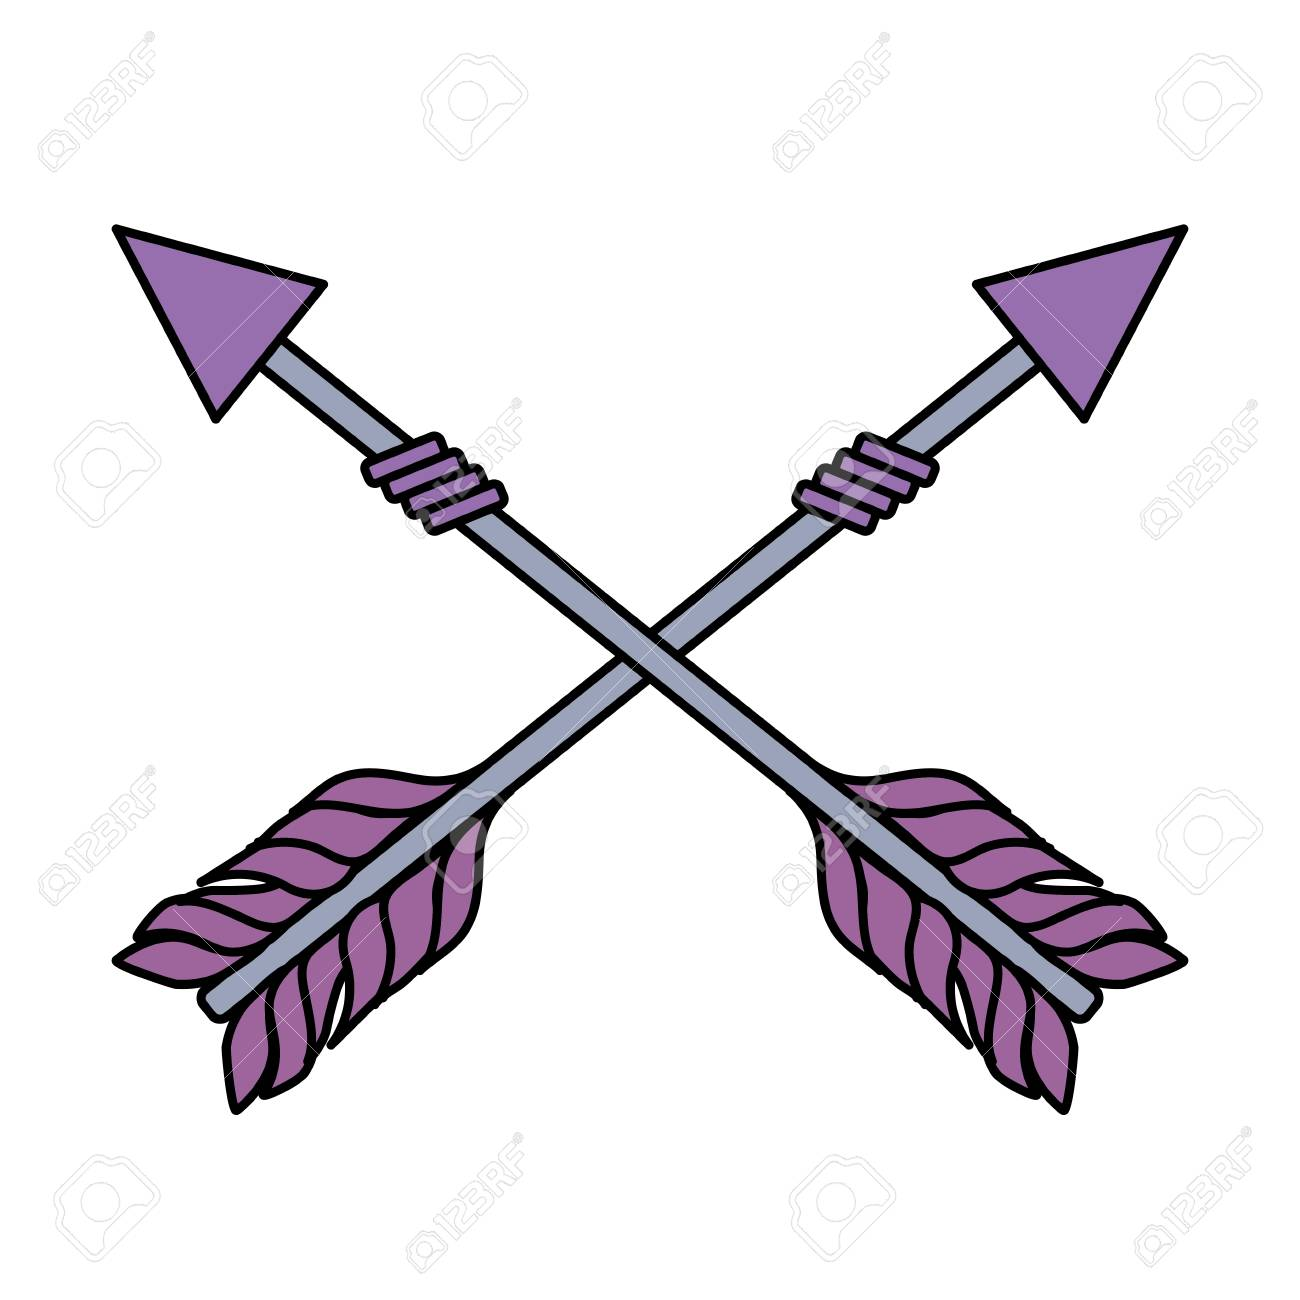 Rustic Arrows With Ornamental Design Stock Vector